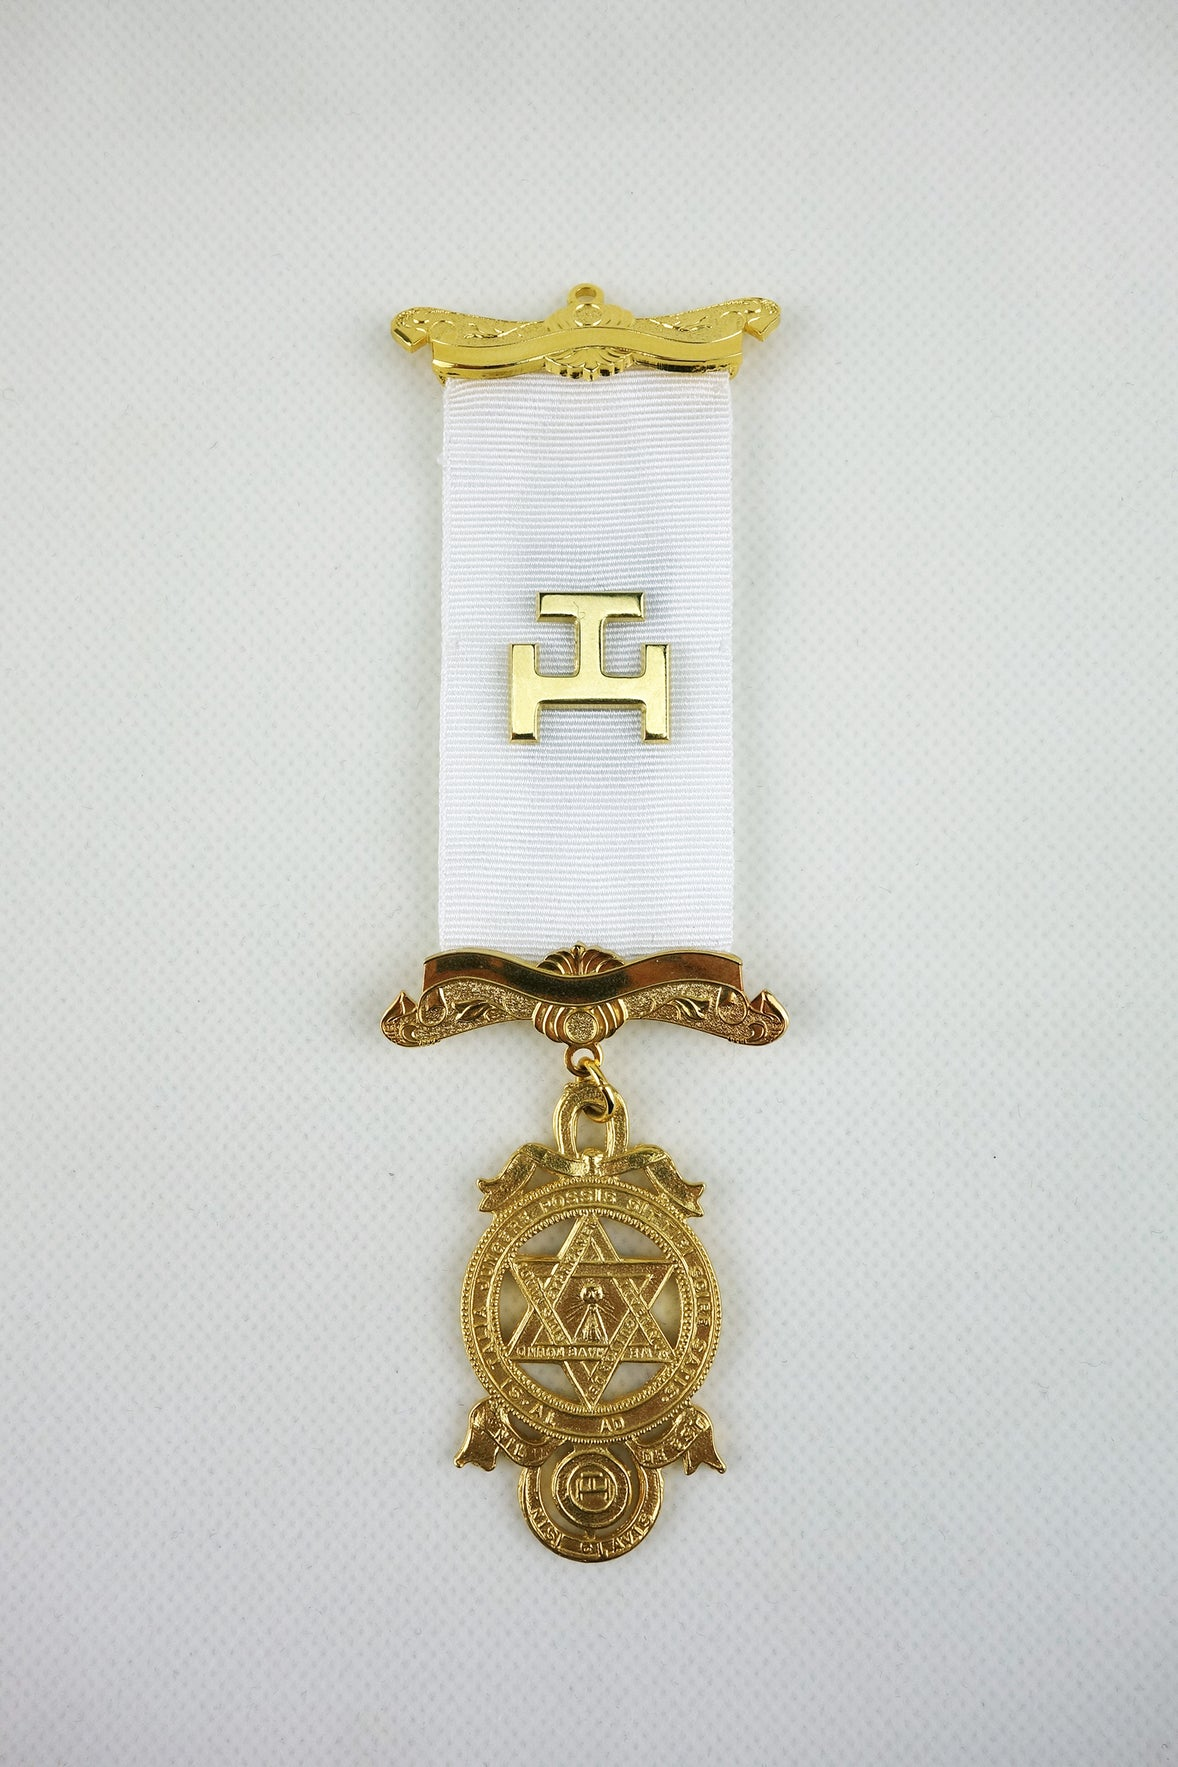 Royal Arch Chapter Companion Breast Jewel